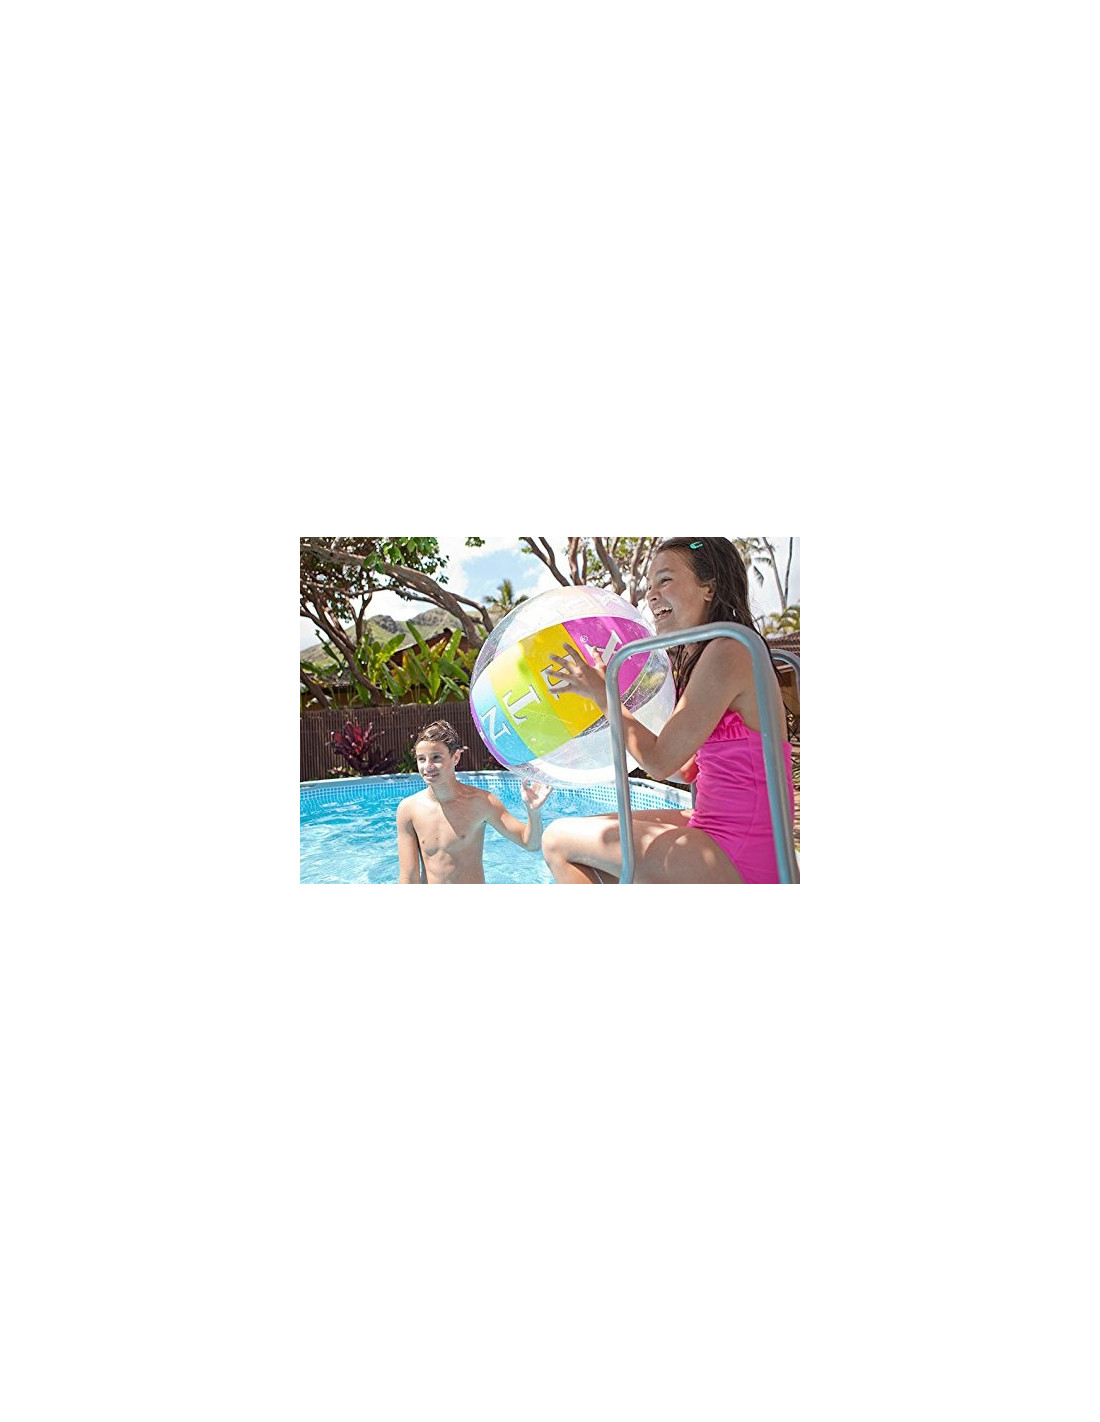 Intex echelle de securite 91 x 107 cm hyper brico for Echelle piscine intex